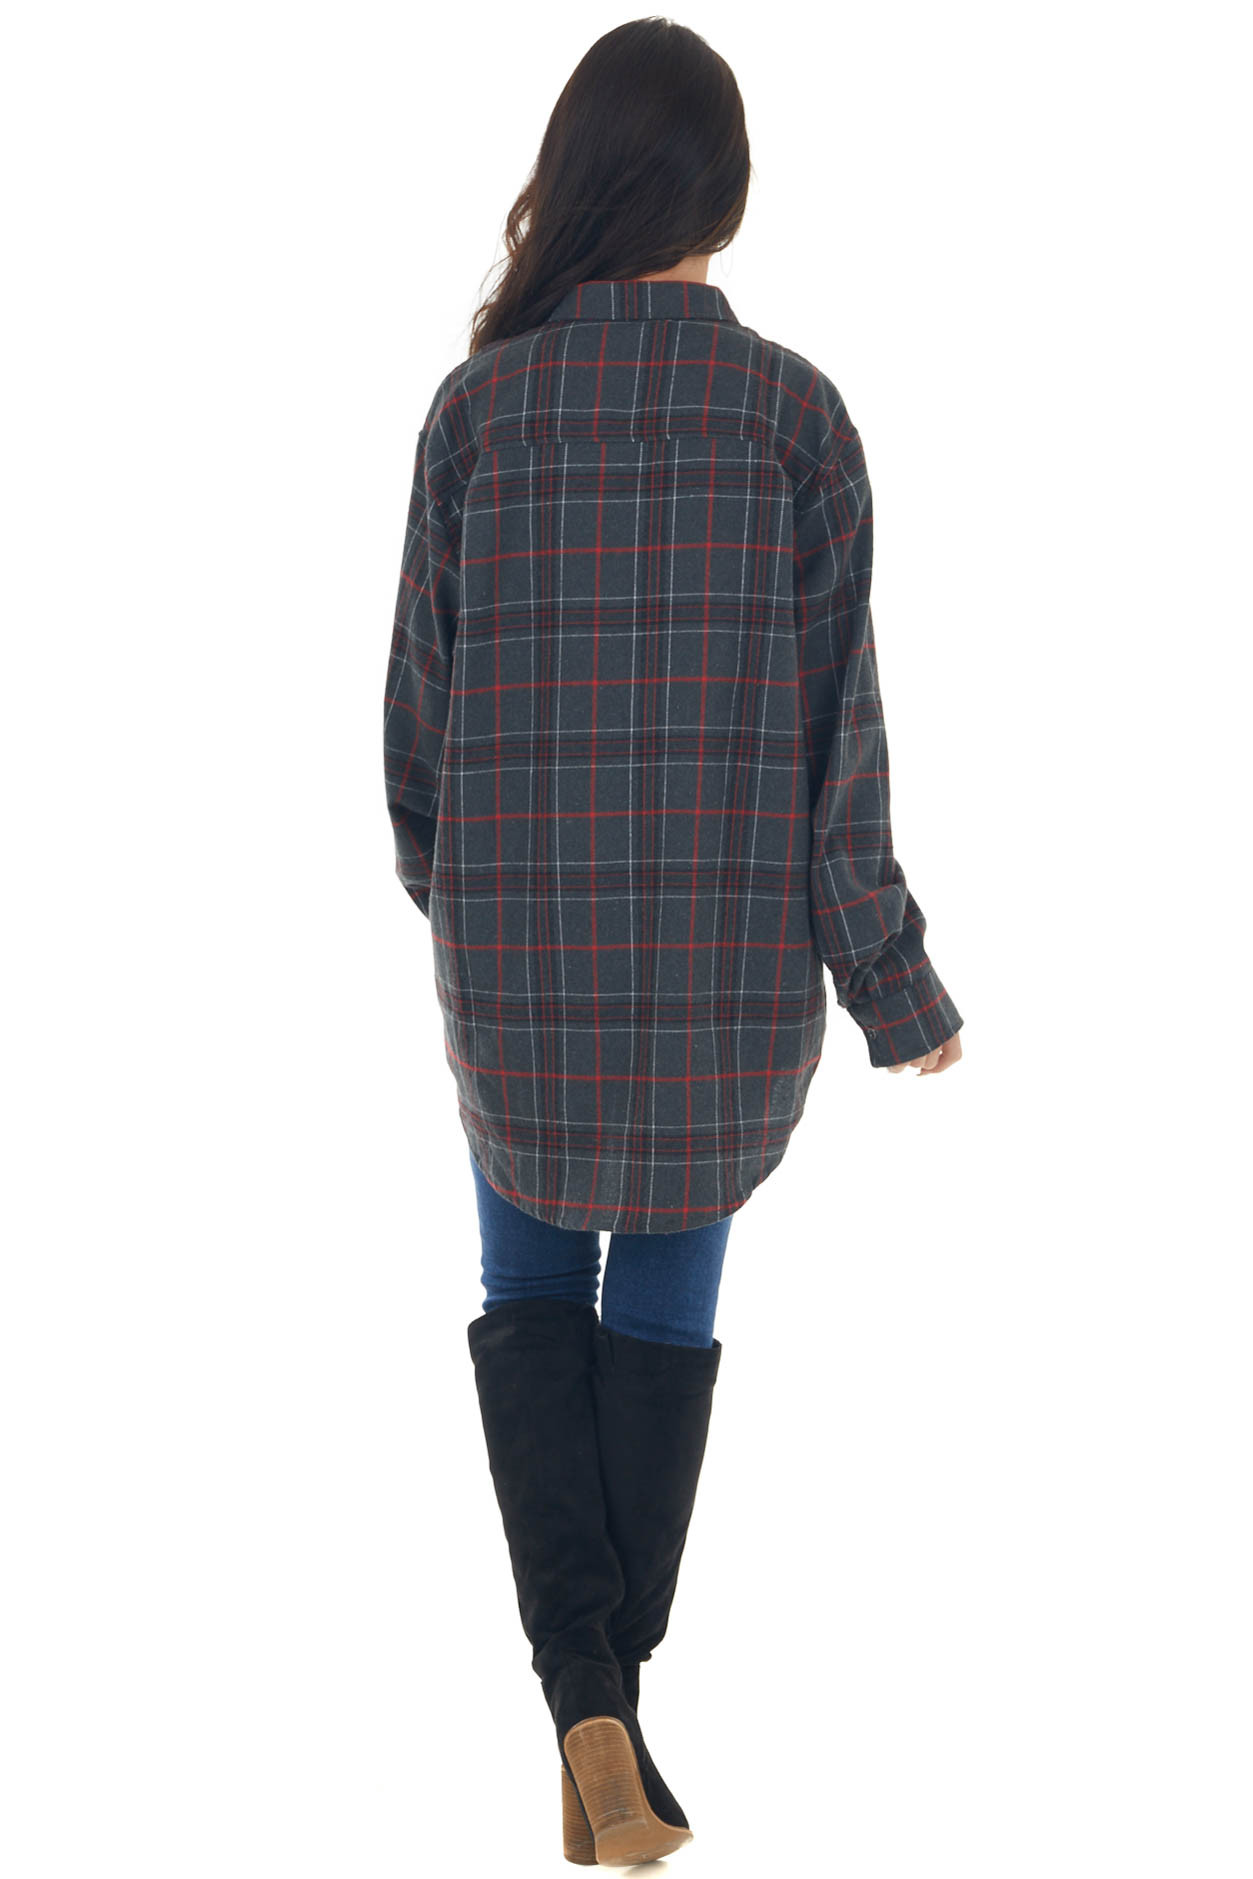 Charcoal Plaid Oversized Rounded Hem Flannel